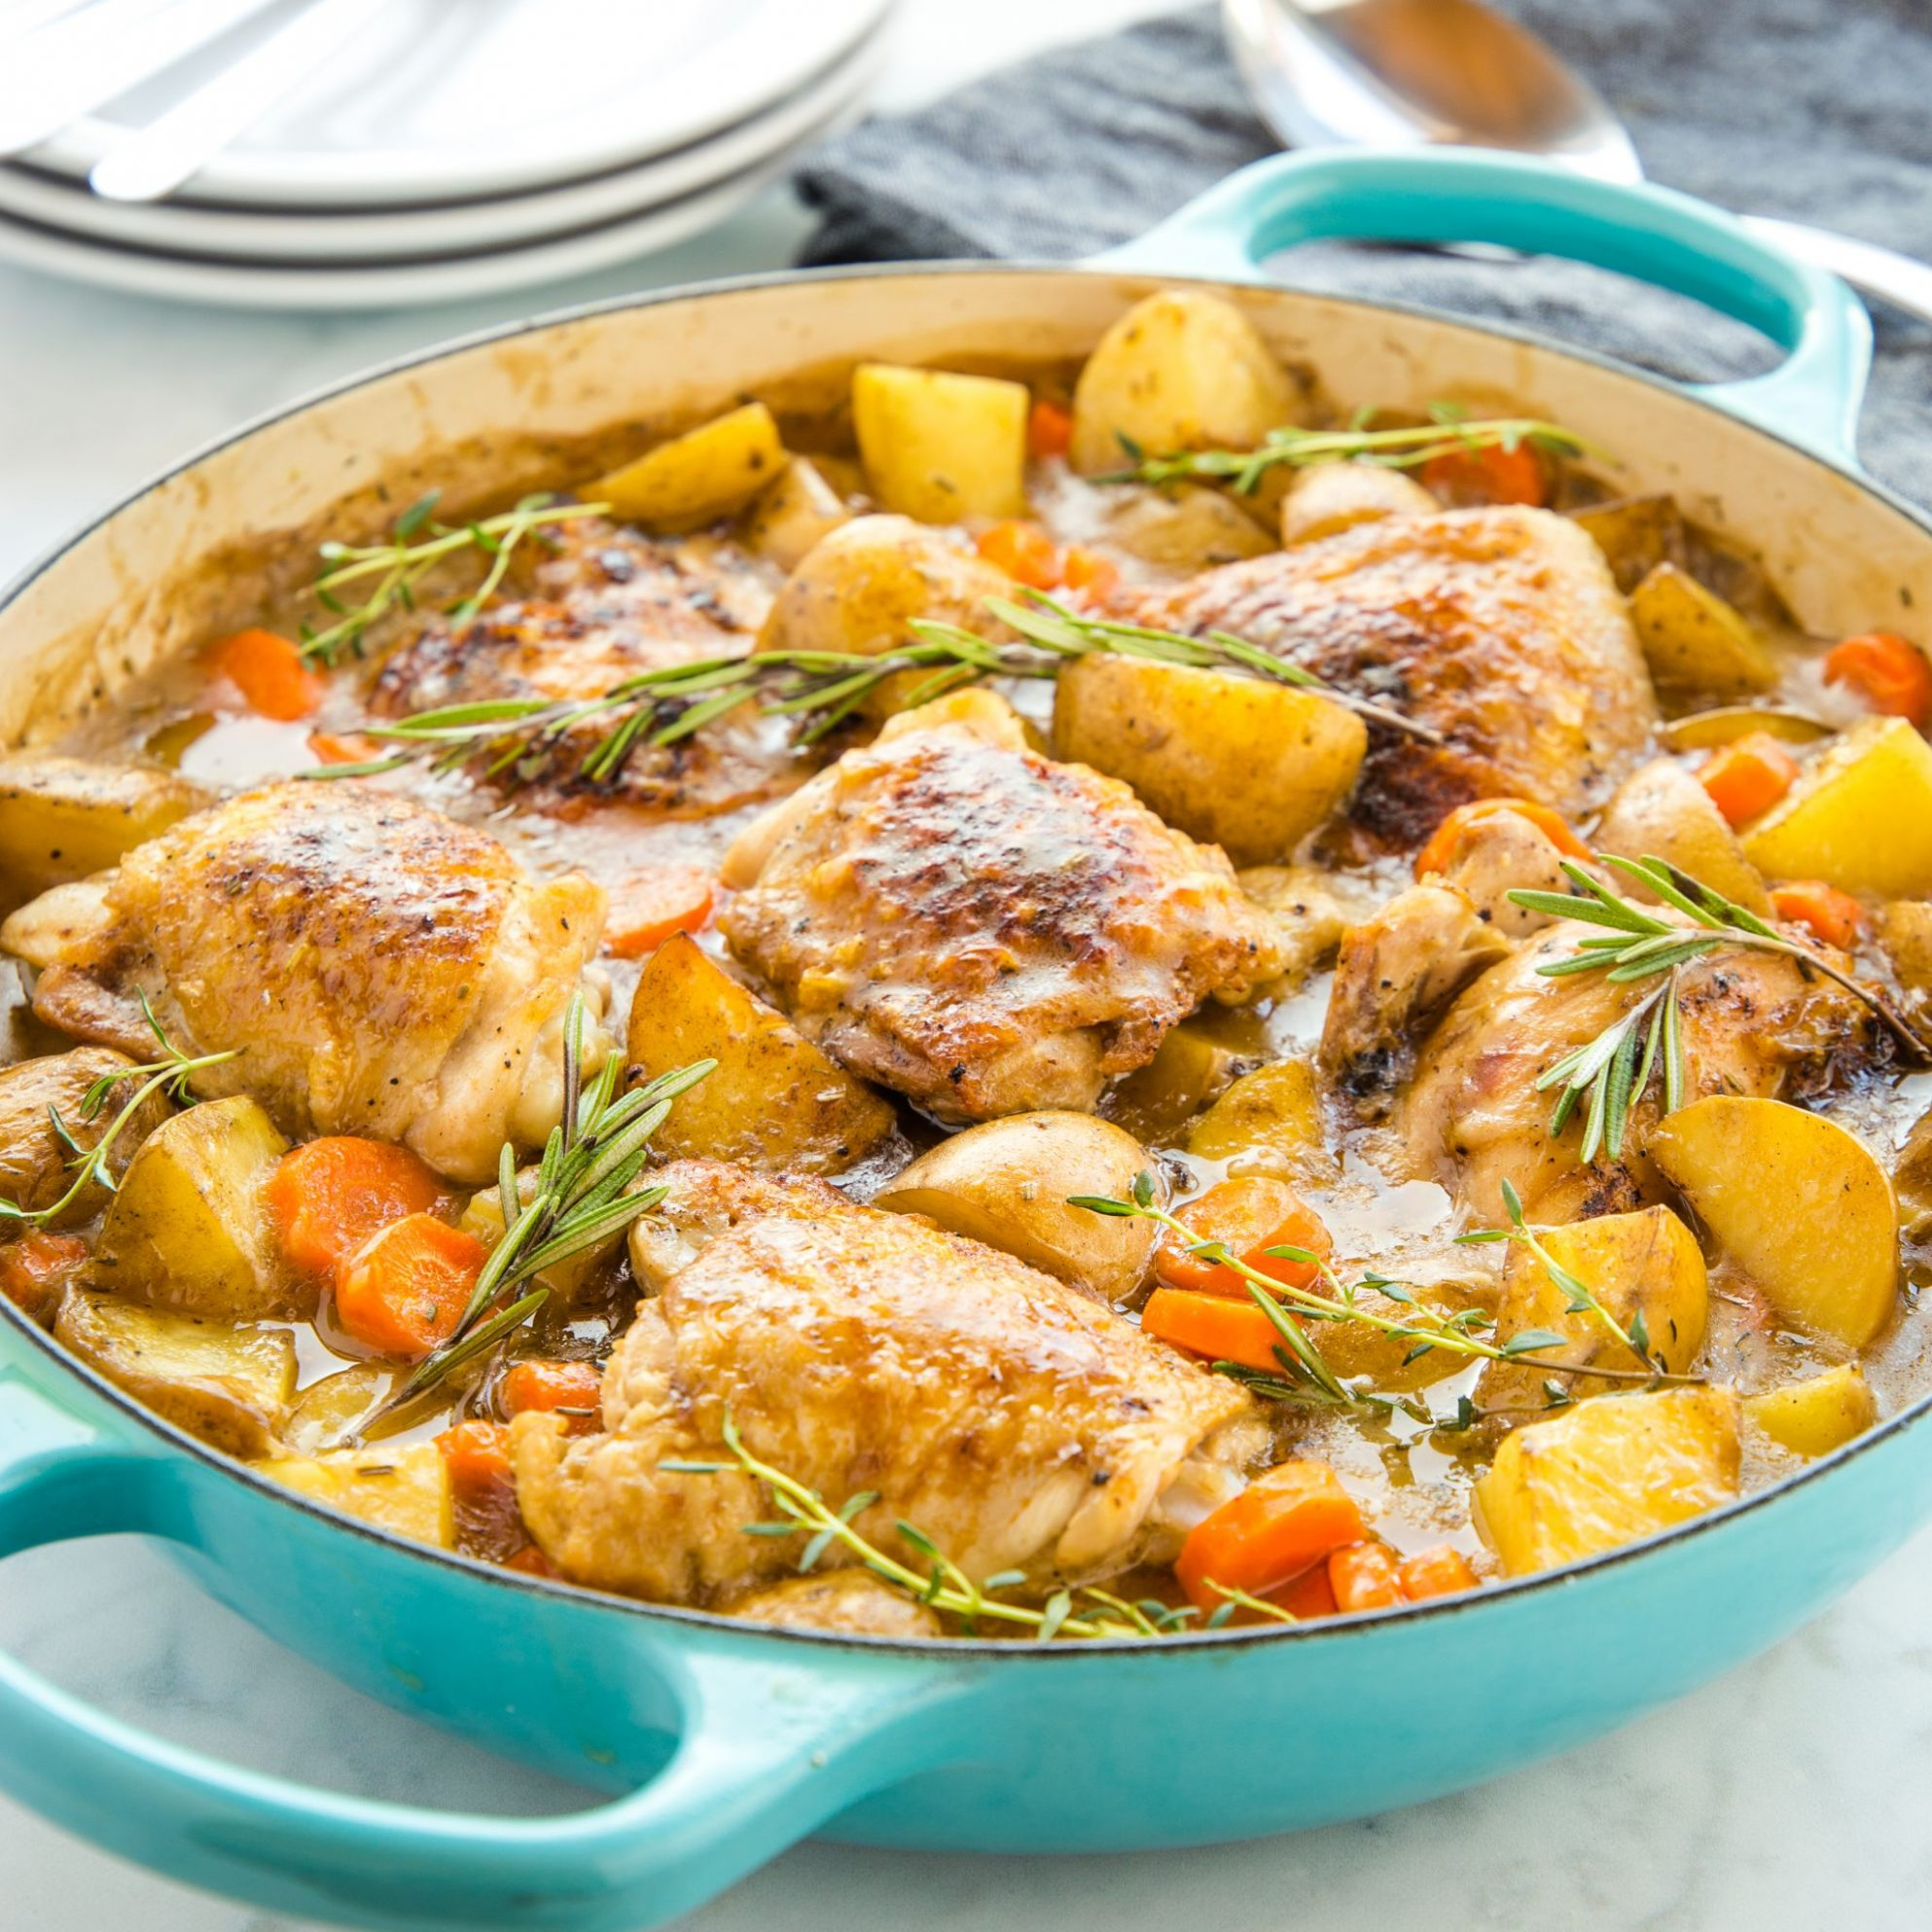 Easy One Pot Roasted Chicken Dinner - Recipes Chicken Dishes